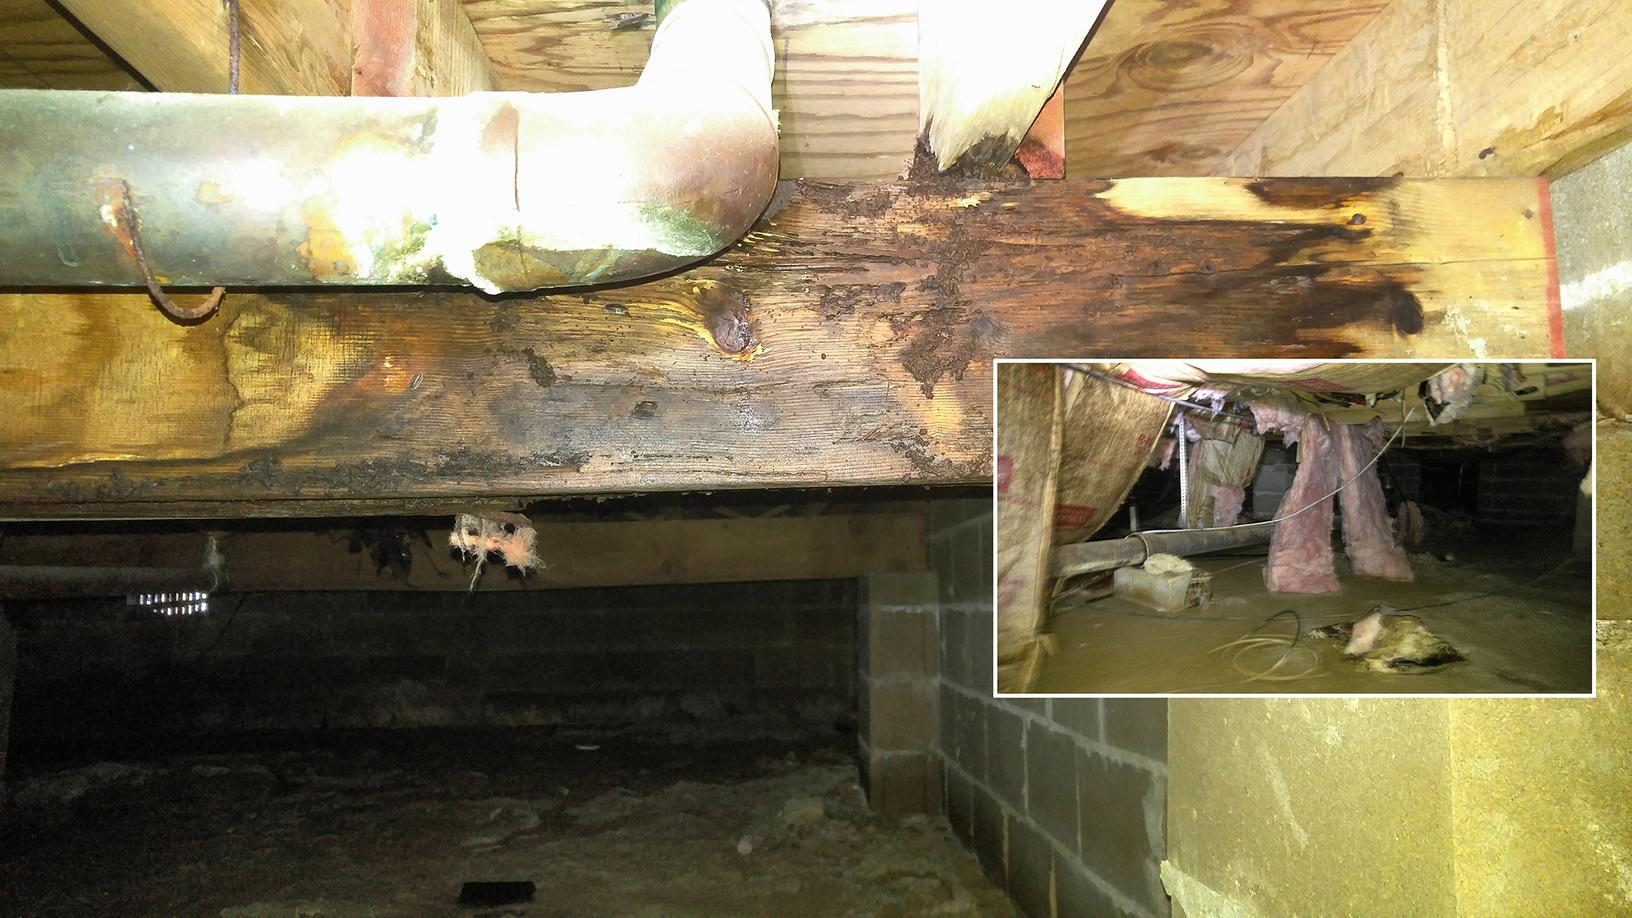 Full Clean up of Moldy Crawl Space in Englishtown, NJ - Before Photo